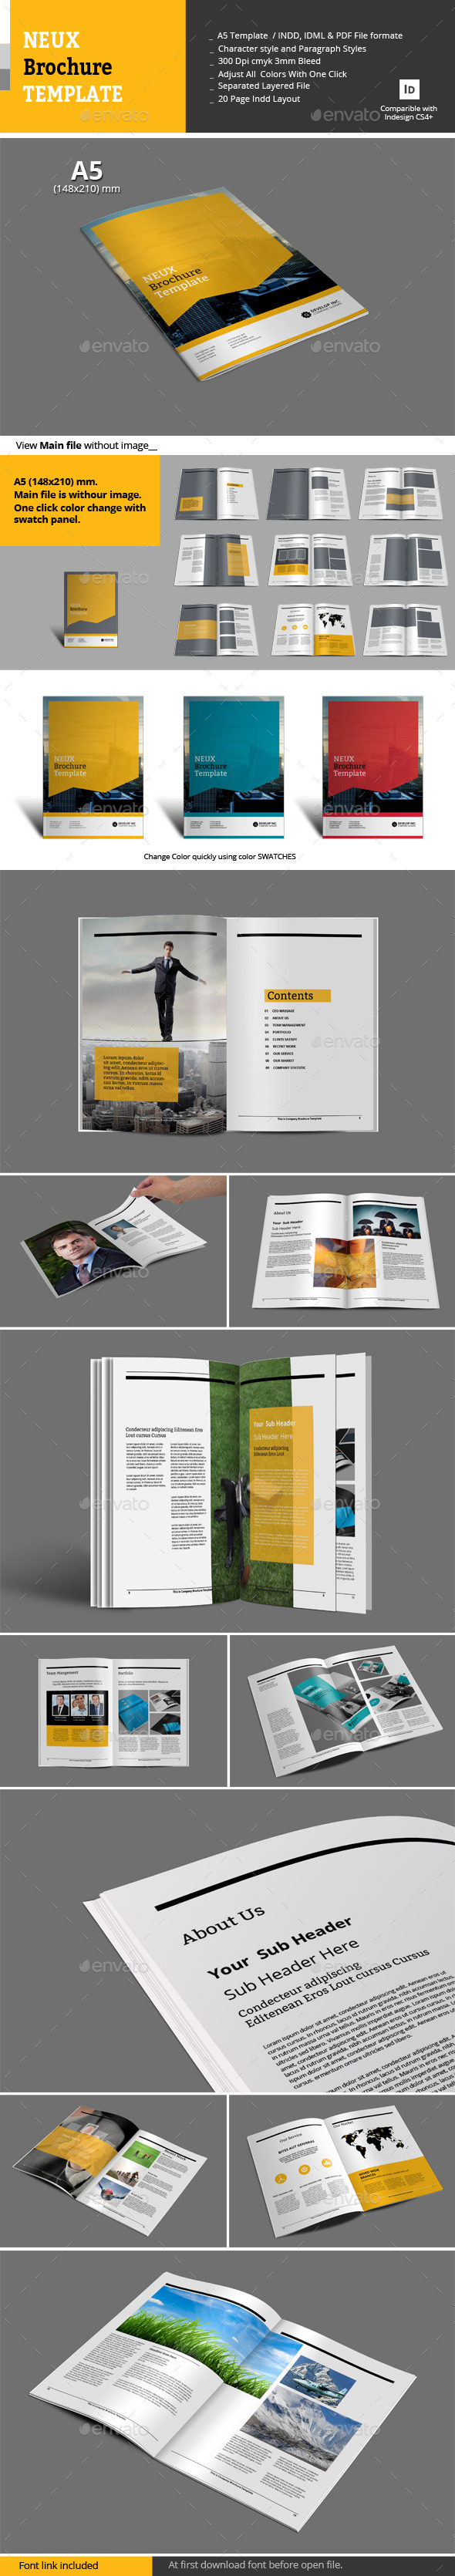 GraphicRiver Neux Brochure Templates 10593091